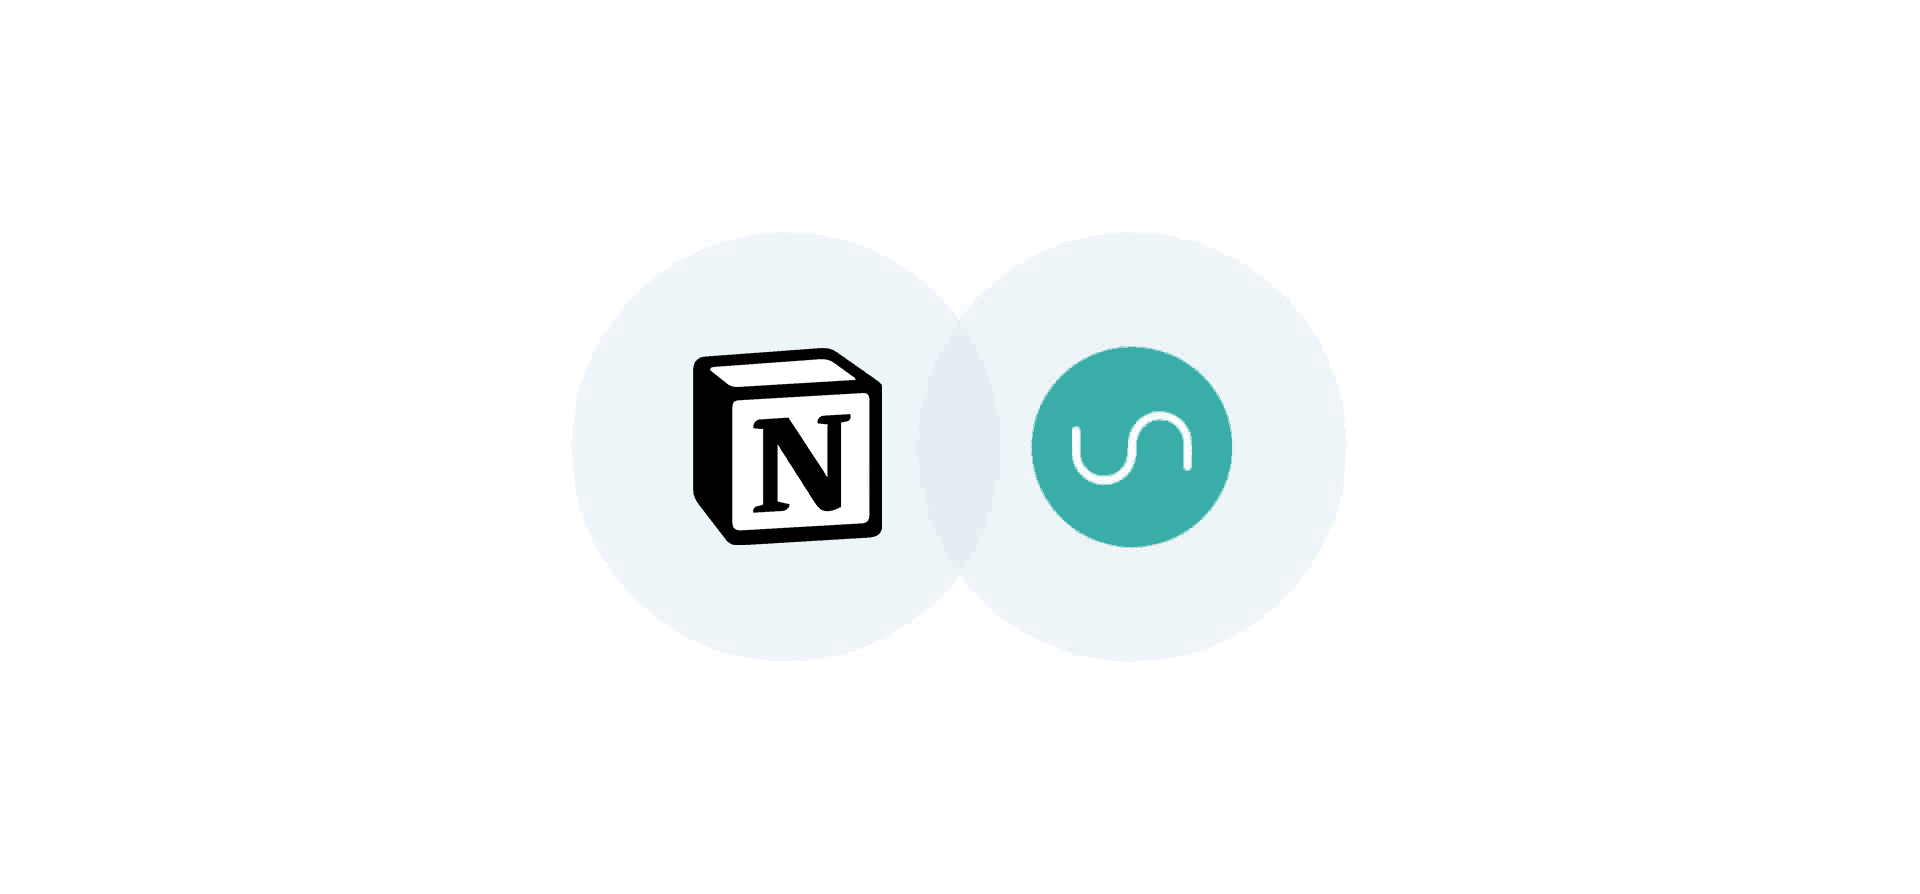 Logos for Notion and Unito, representing Unito's new Notion integration